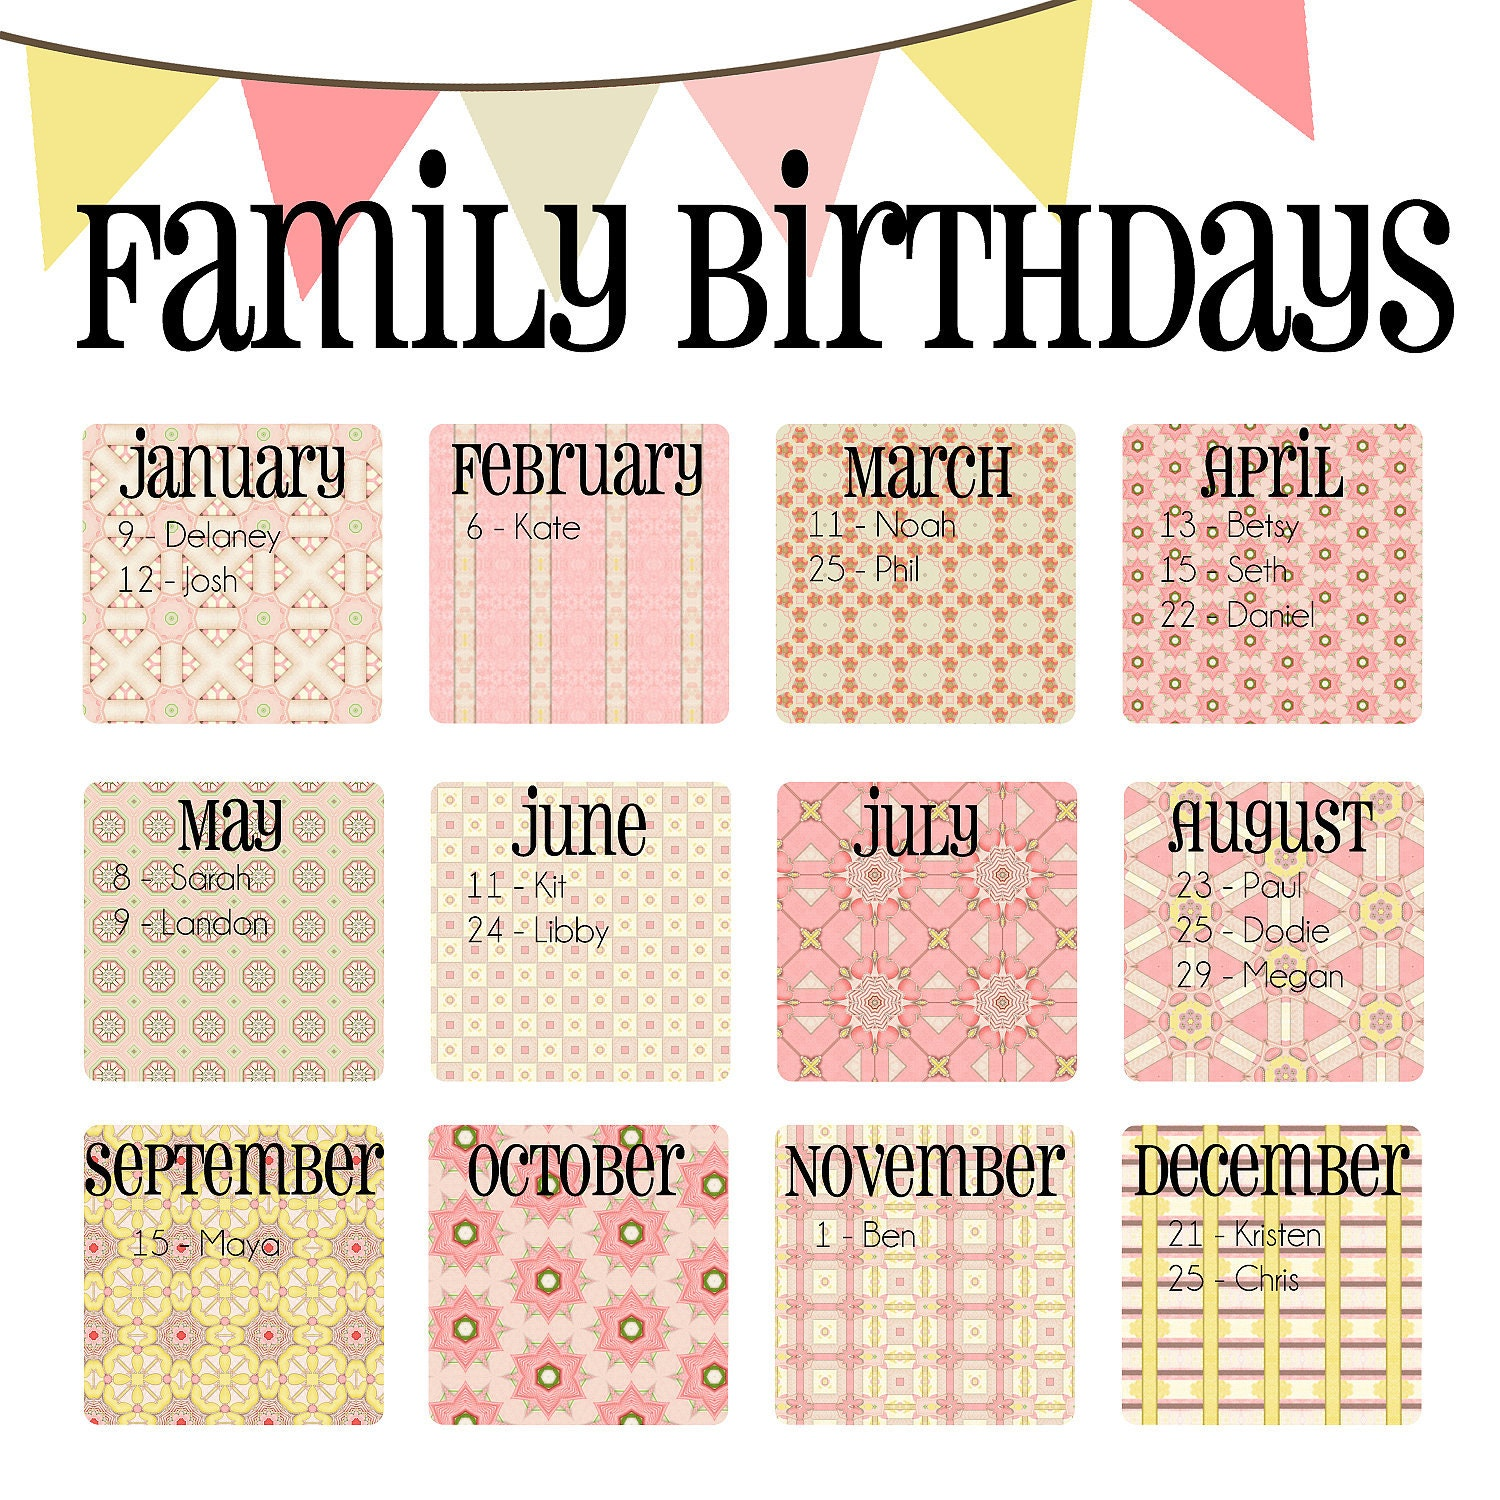 Birthday Calendar Ideas For Work : Family birthday calendar digital copy you print in